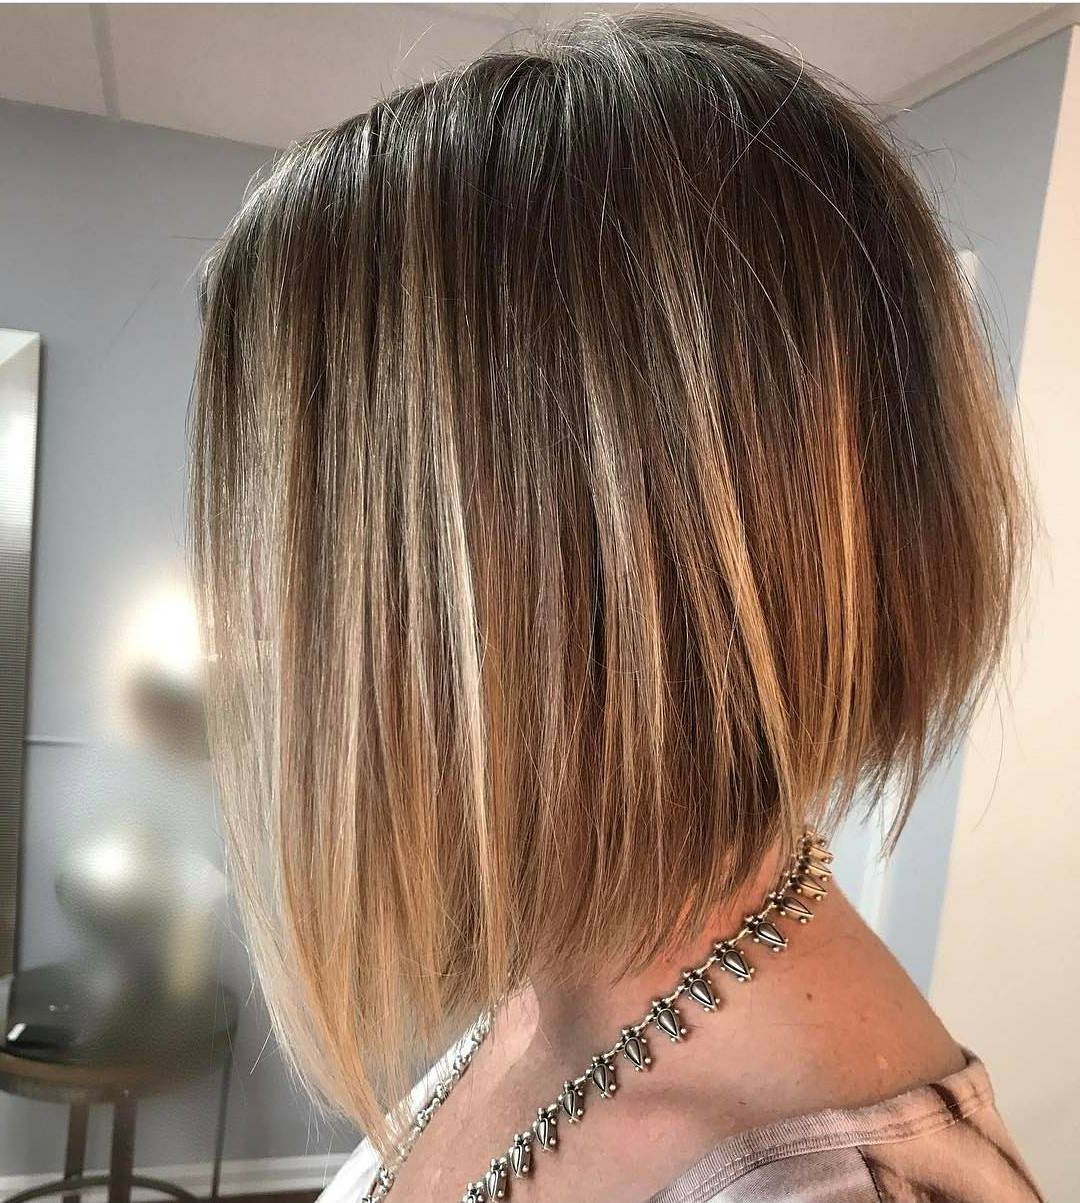 10 Flattering Short Straight Hairstyles 2019 For Stacked Blonde Balayage Pixie Hairstyles For Brunettes (View 10 of 20)